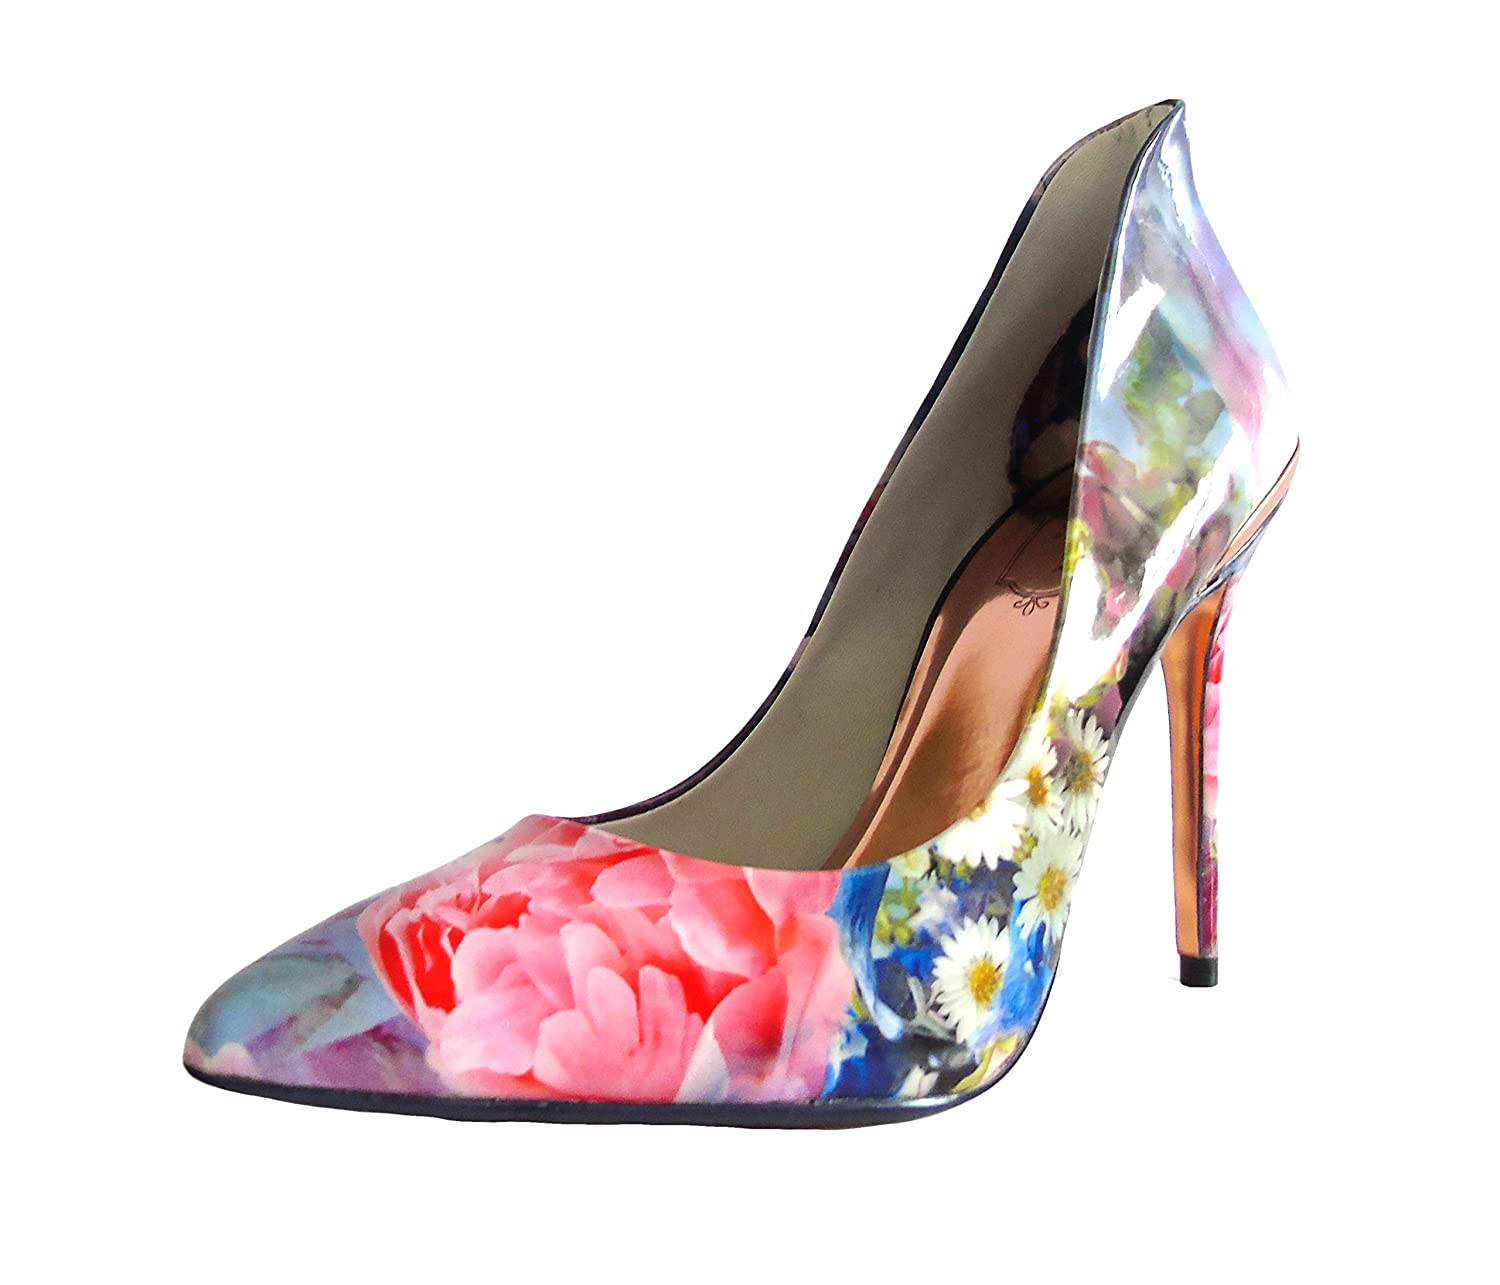 751cc0158 Ted Baker Patent Floral Shoes (6 UK) Powder Blue  Amazon.co.uk  Shoes   Bags